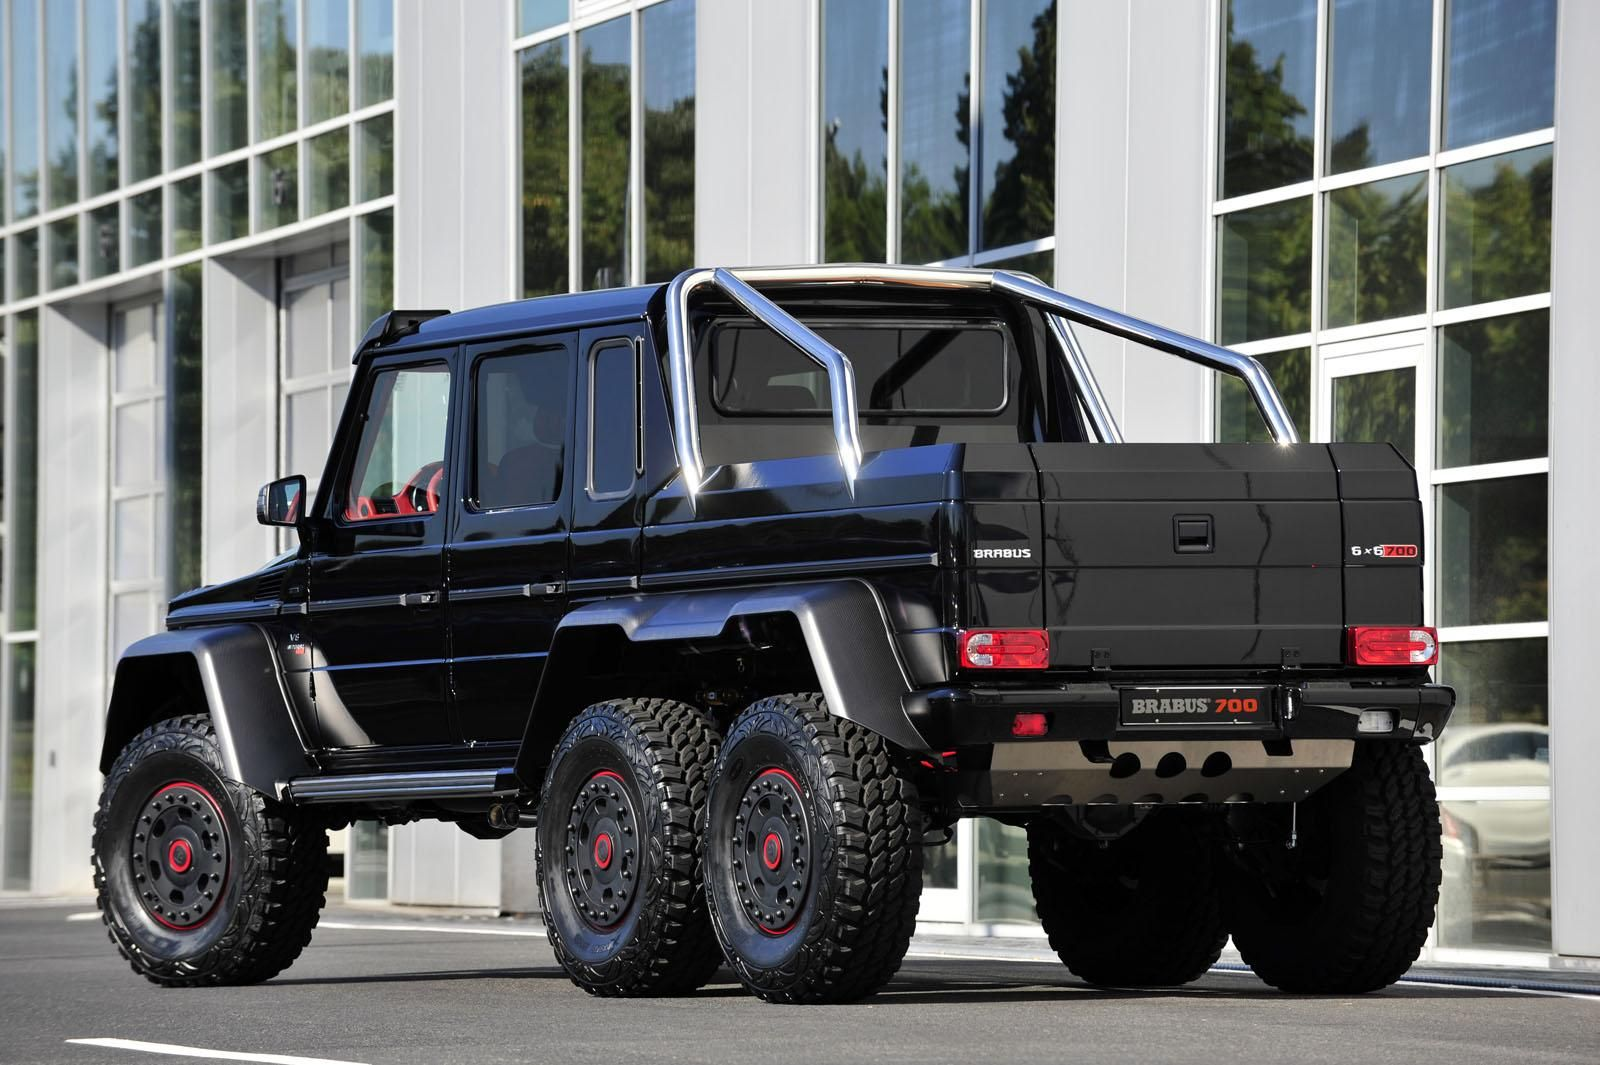 Brabus B63s Announced Based On The Mercedes G63 Amg 6x6 With